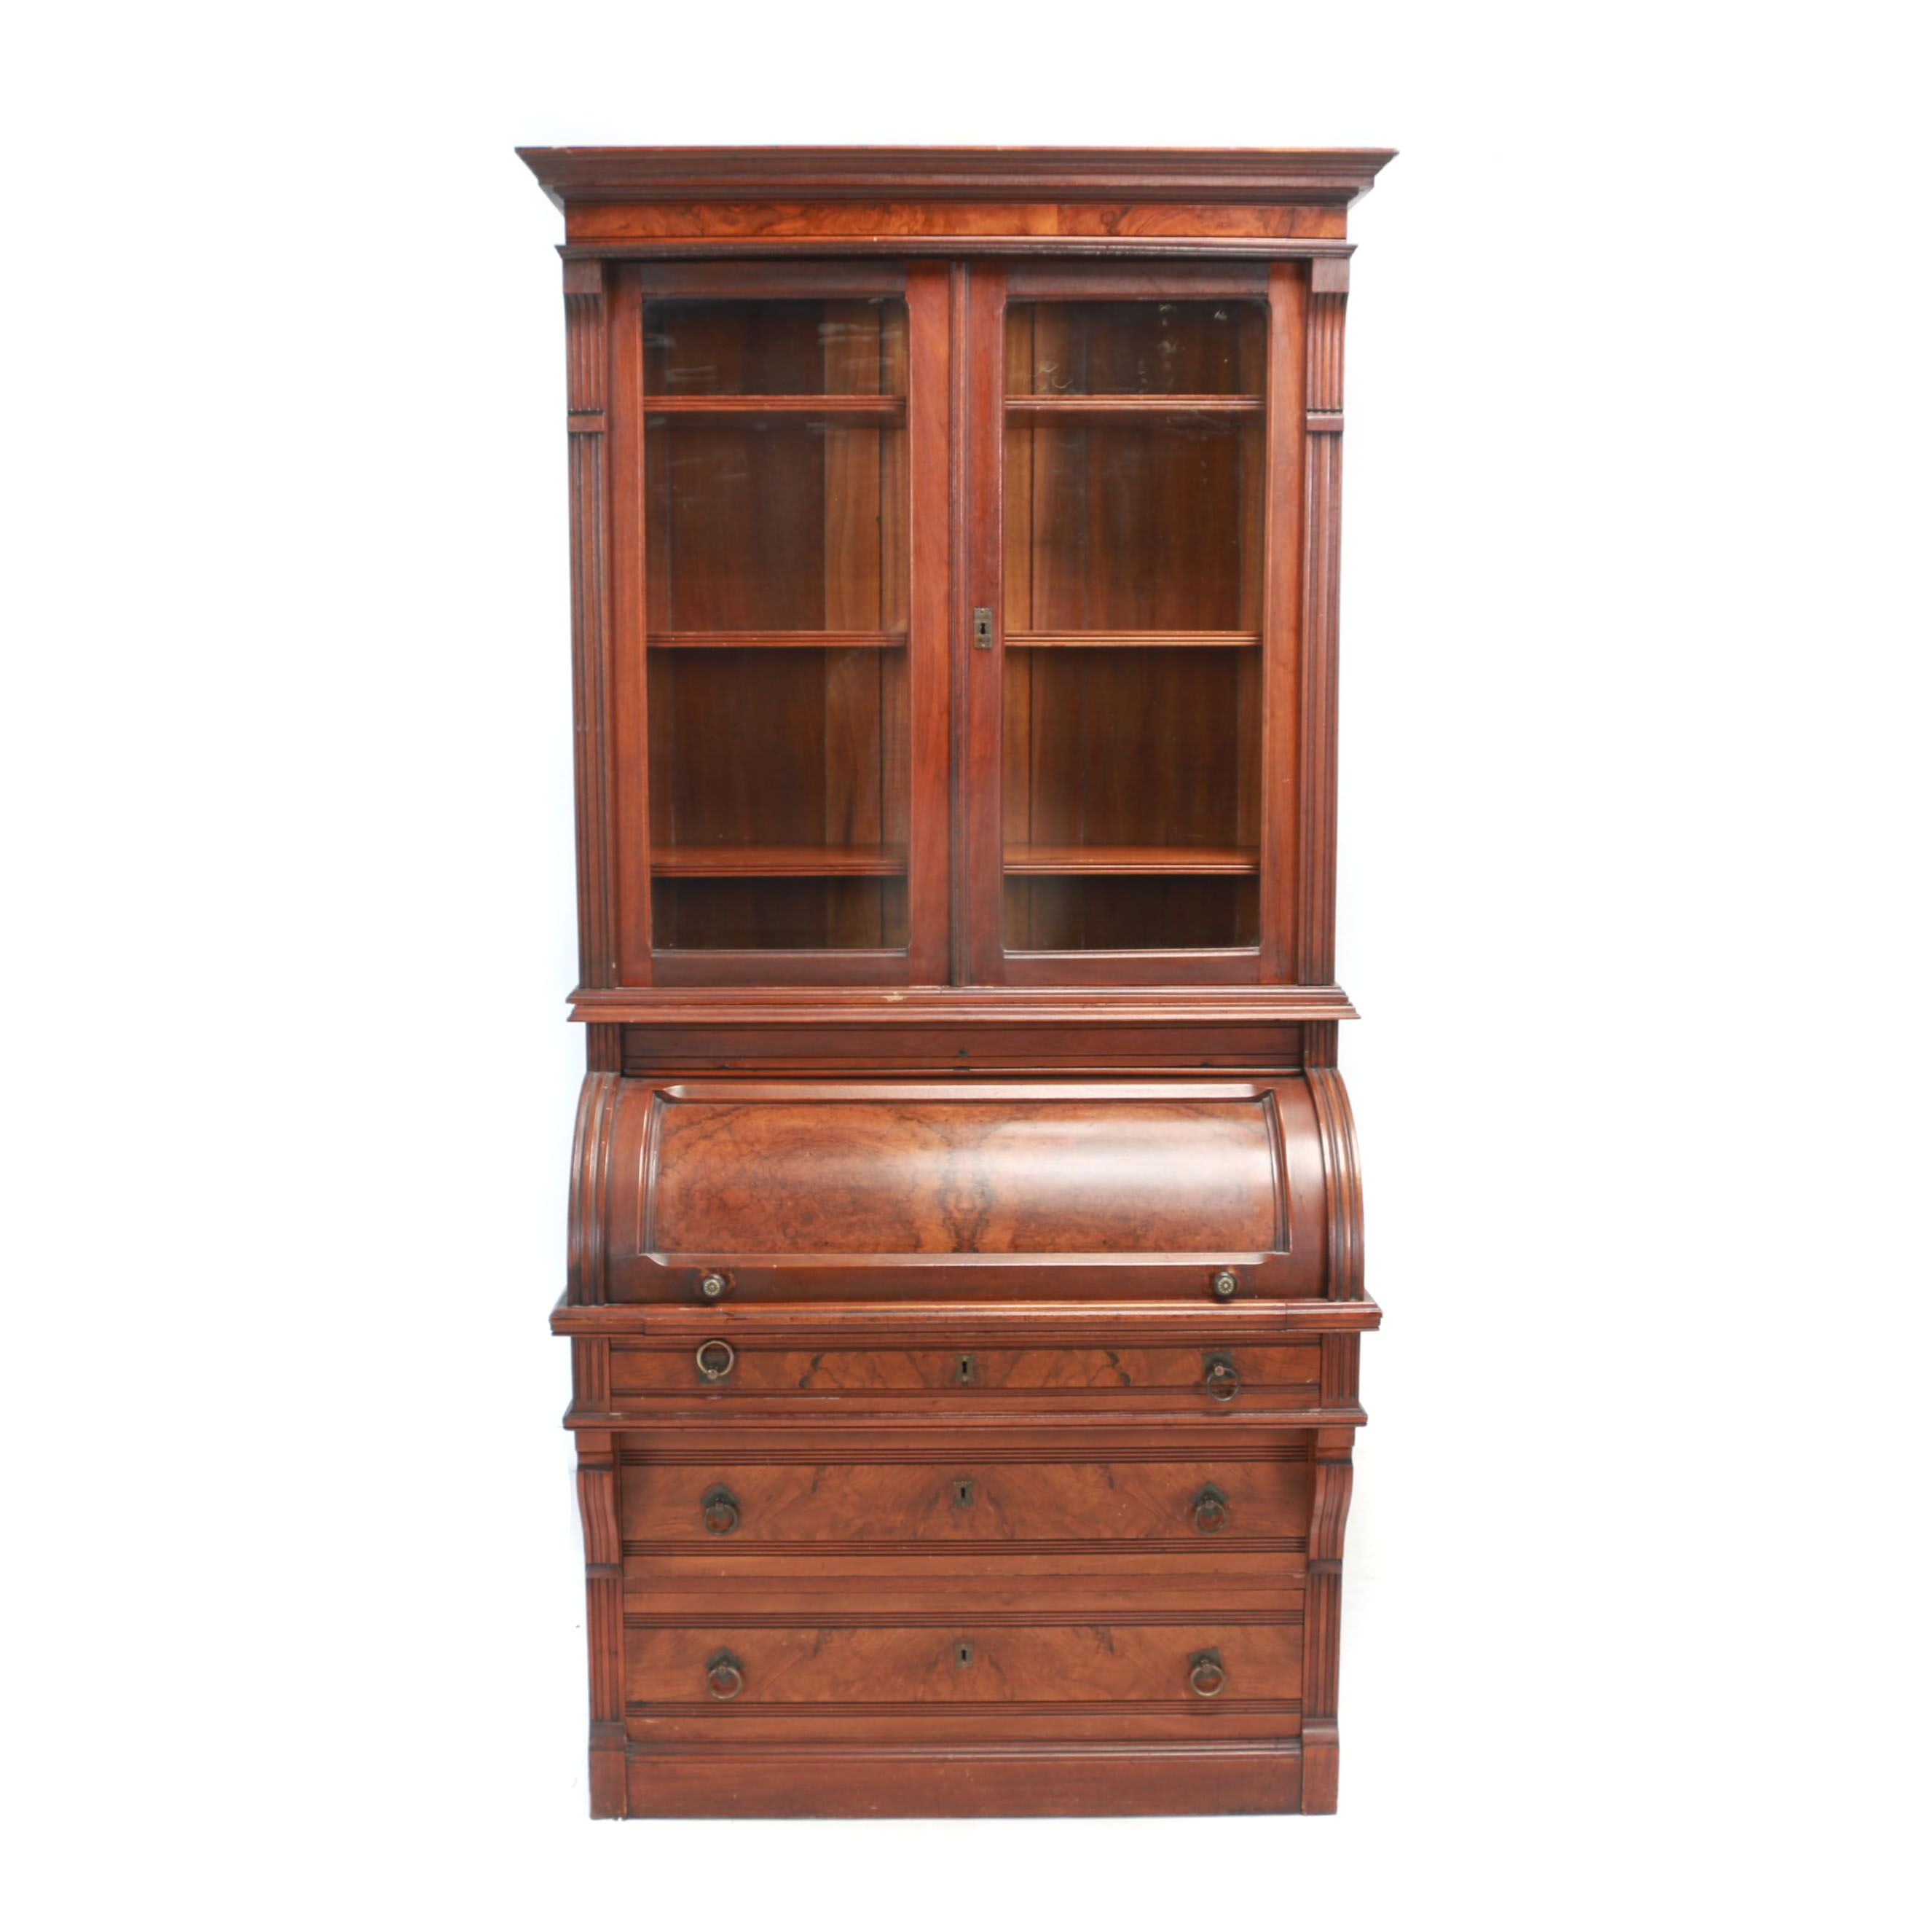 Victorian Walnut and Burl Walnut Cylinder Secretary Bookcase, Late 19th Century